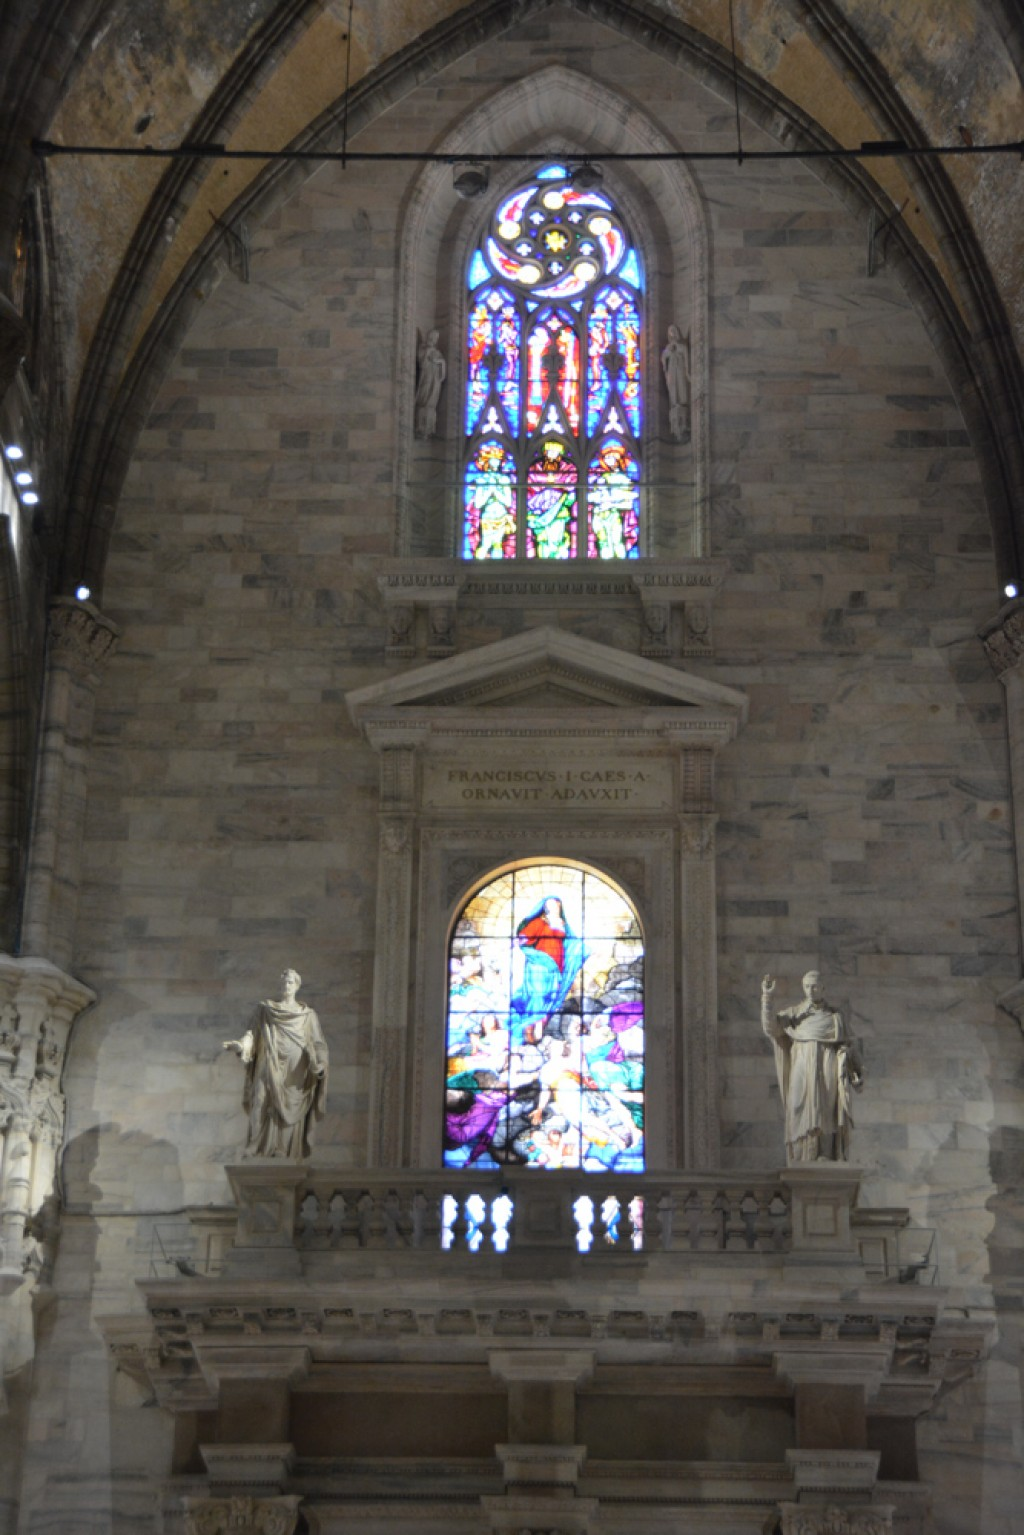 Beautiful stained glass inside the Milan Cathedral